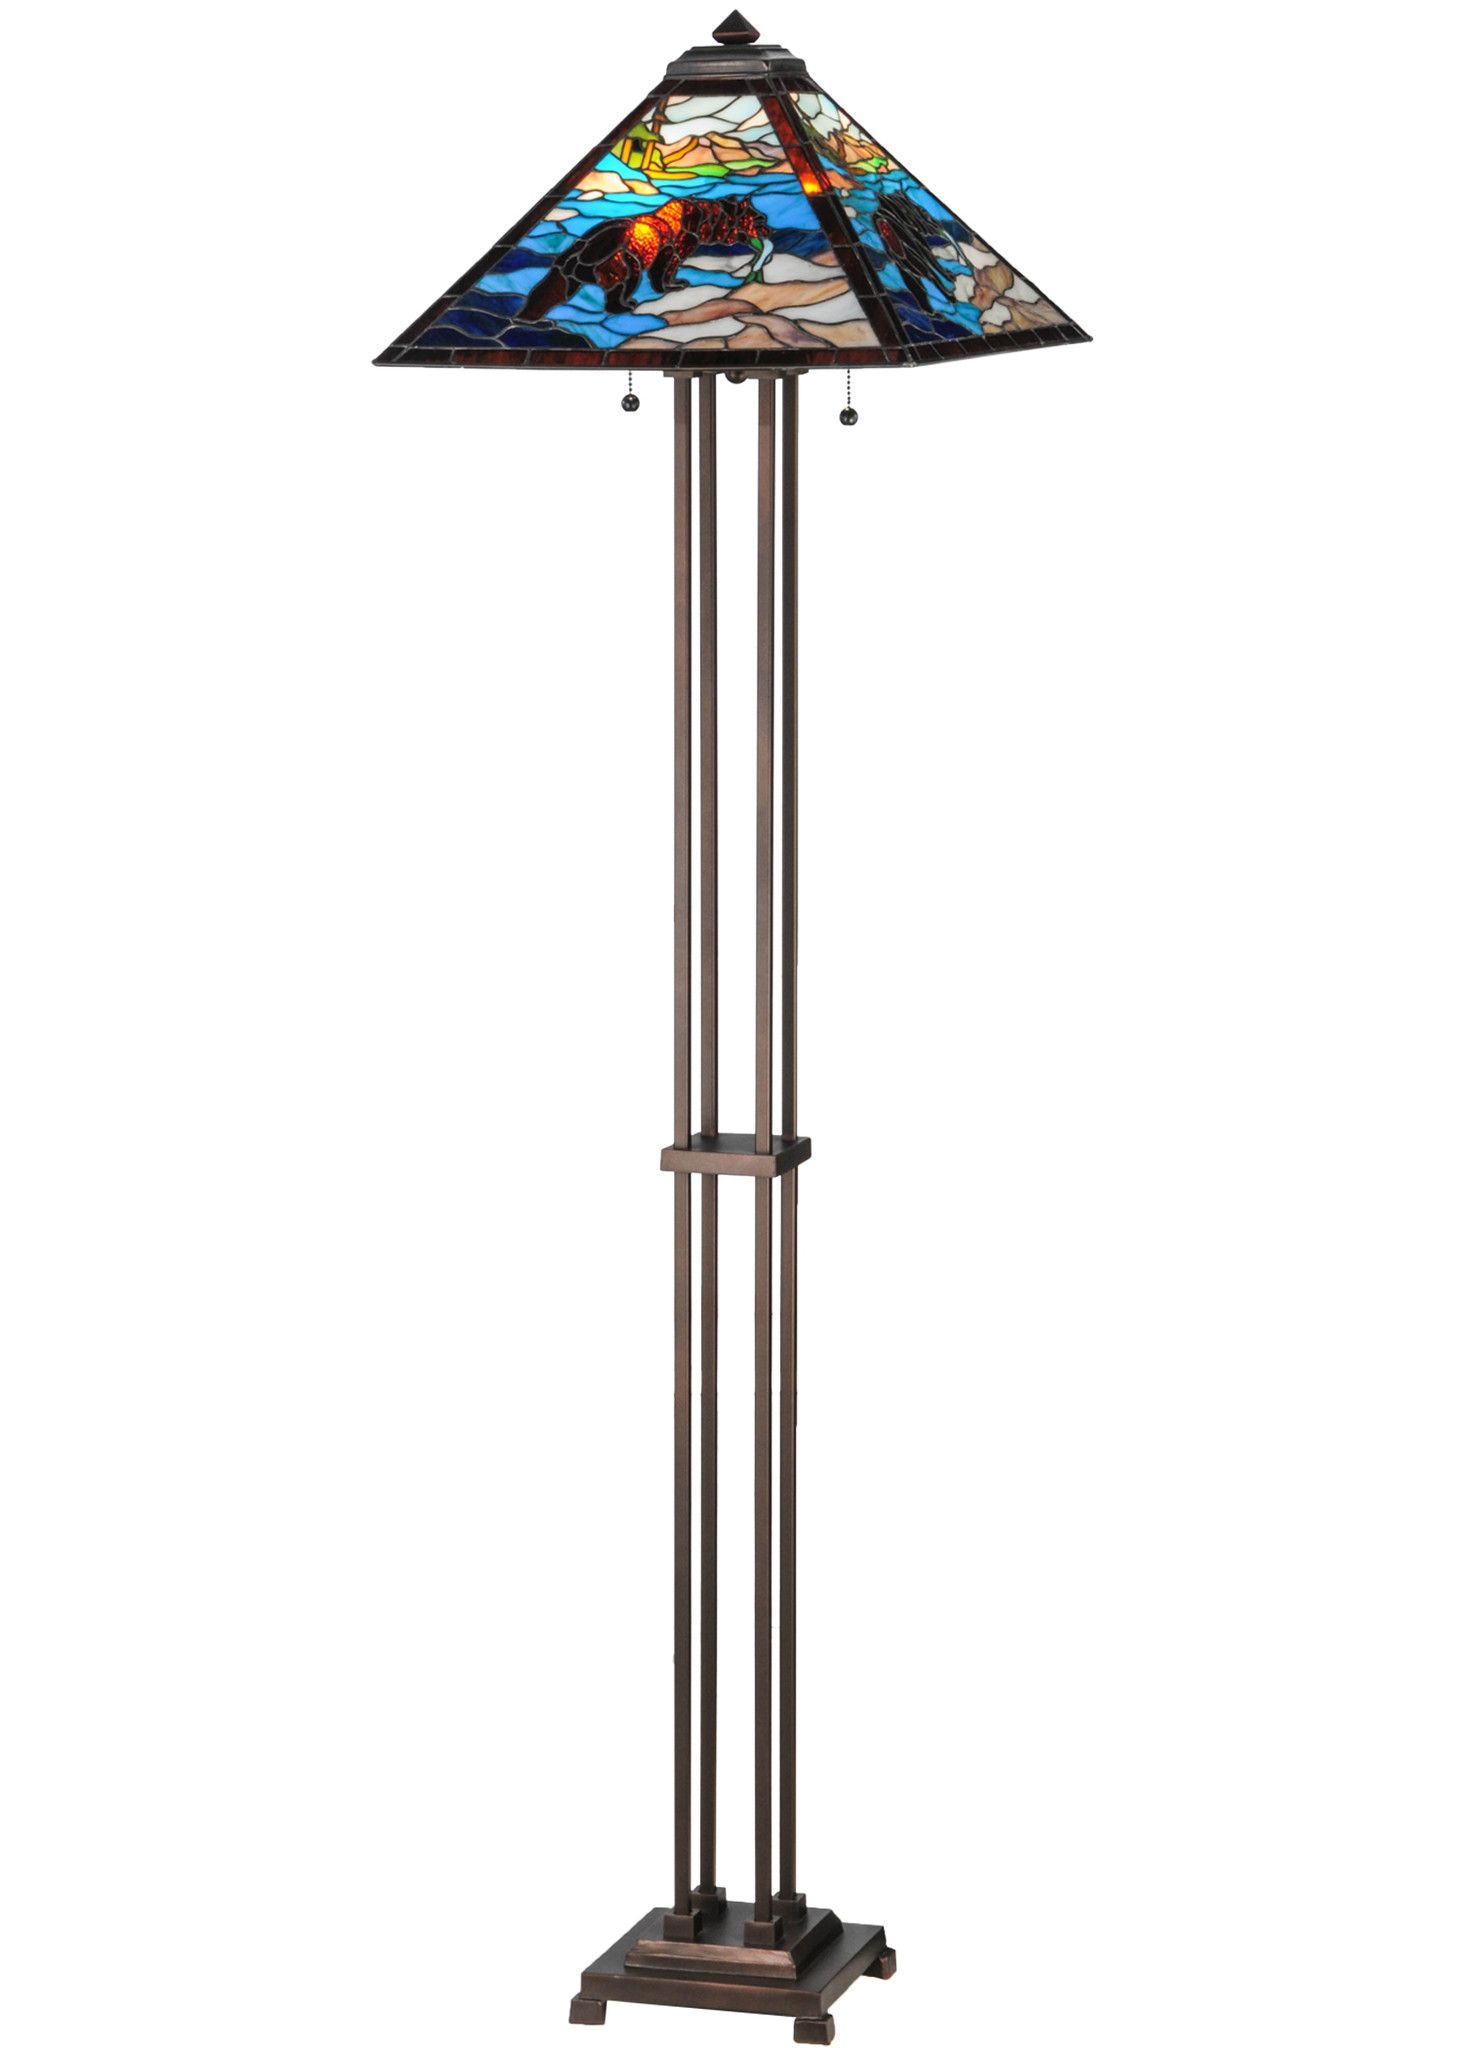 625h stained glass grizzly bear floor lamp floor lamp granite 625h grizzly bear floor lamp geotapseo Choice Image